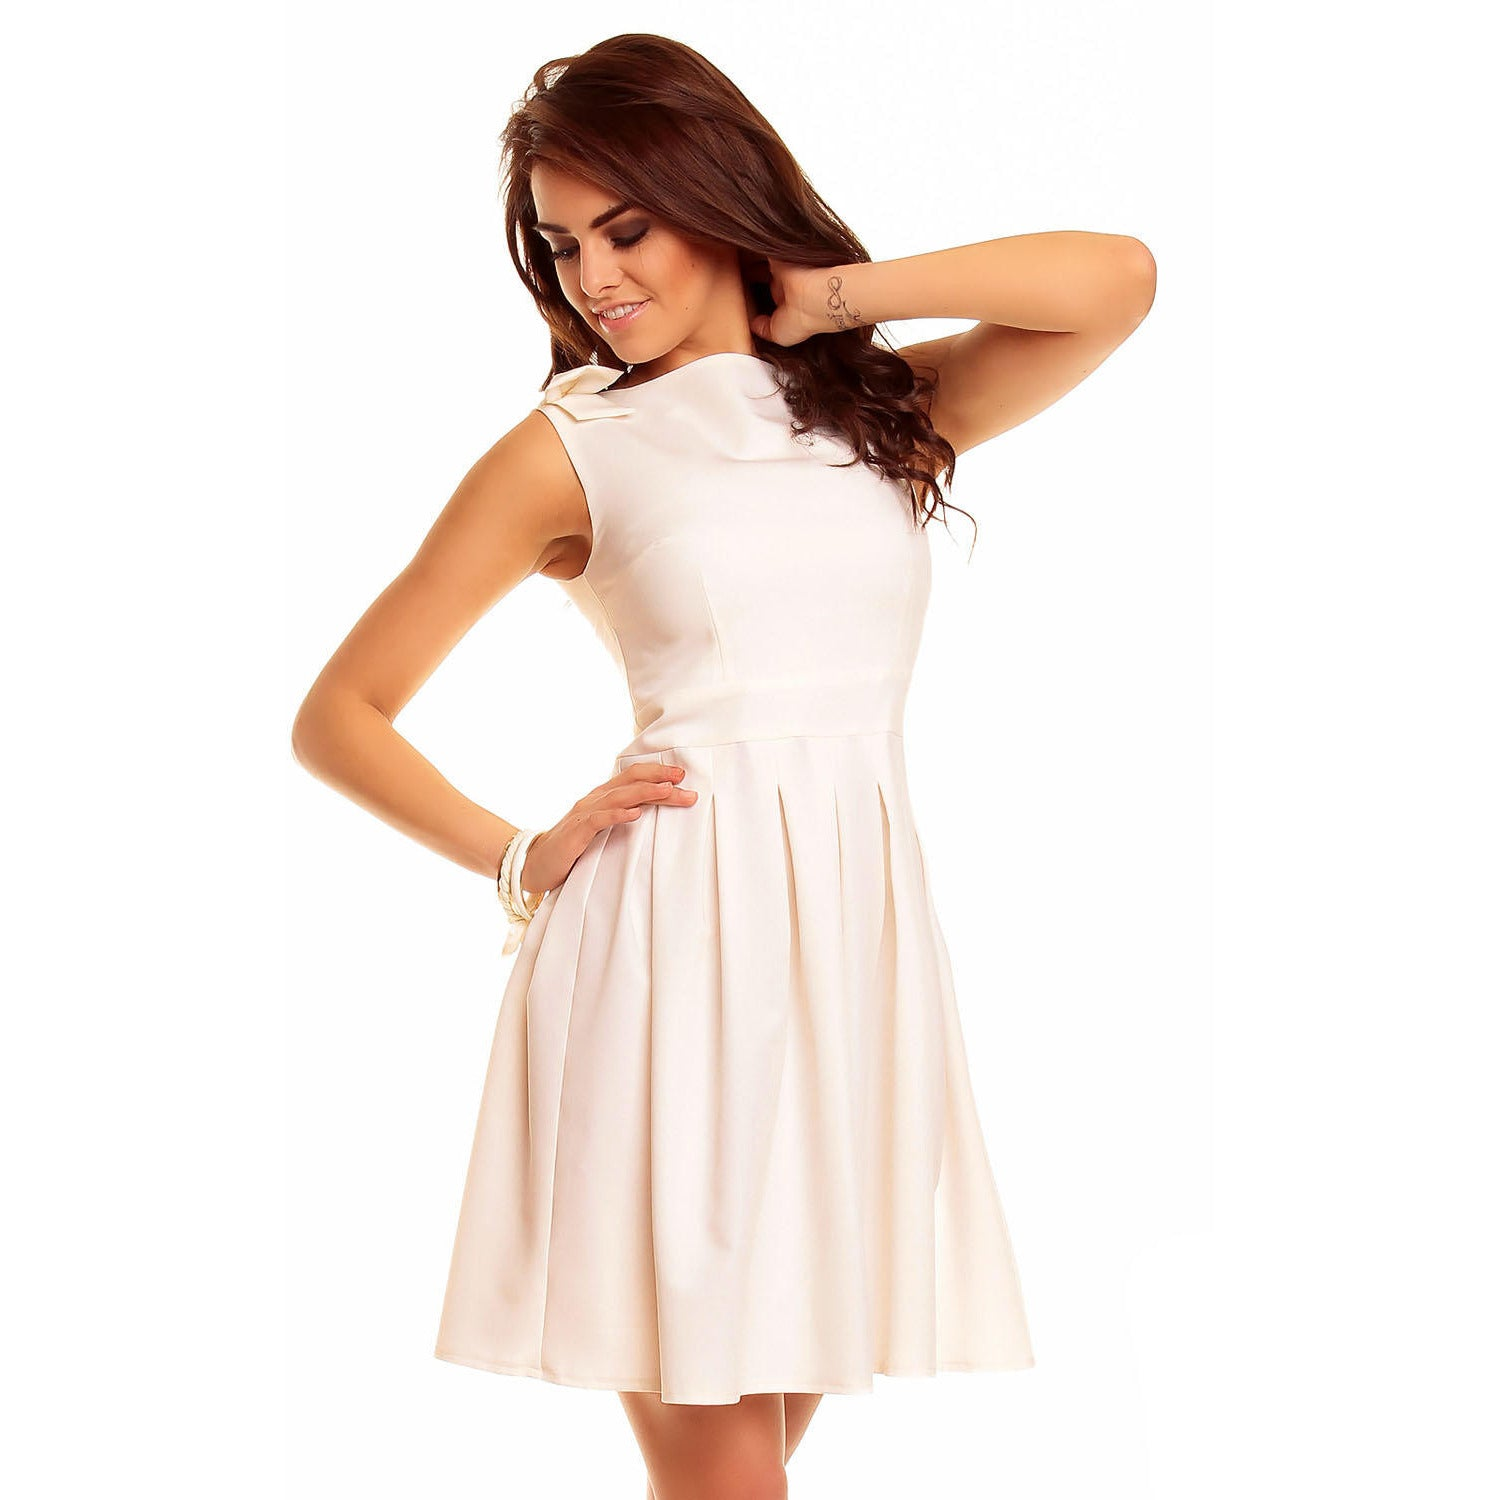 Creamy Flippy Dress With Bend Sleeveless Shoulder LAVELIQ - LAVELIQ - 1